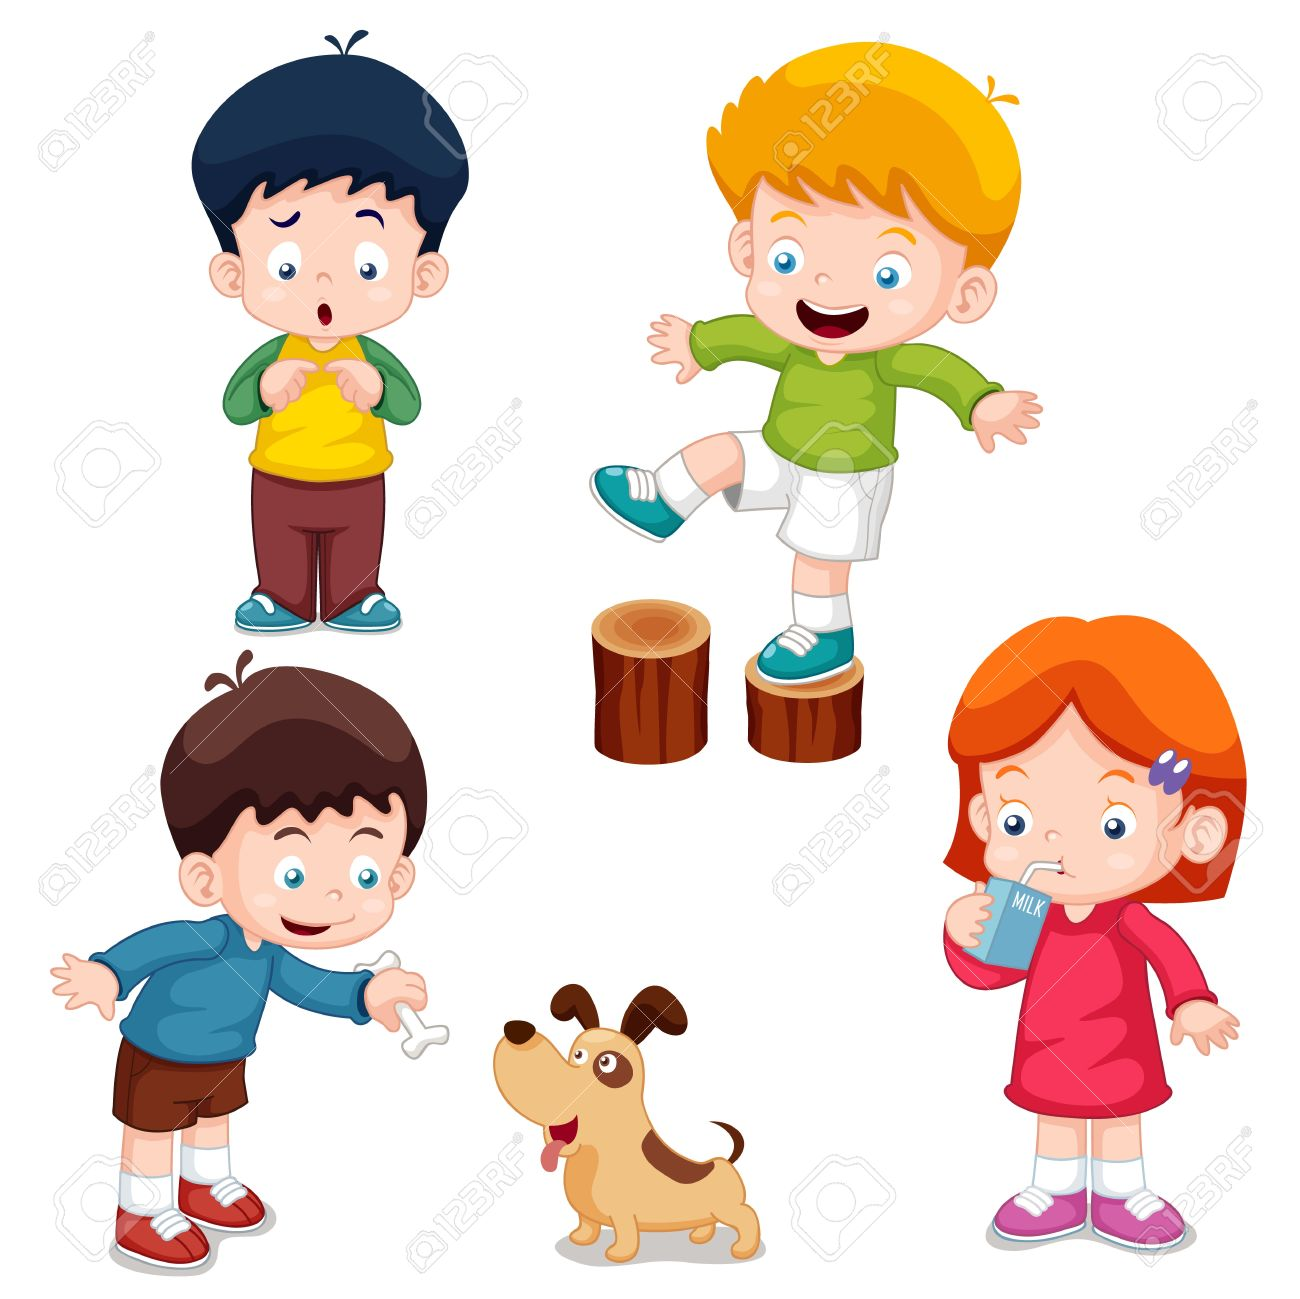 vector illustration of characters kids cartoon vector - Cartoon Kids Drawing